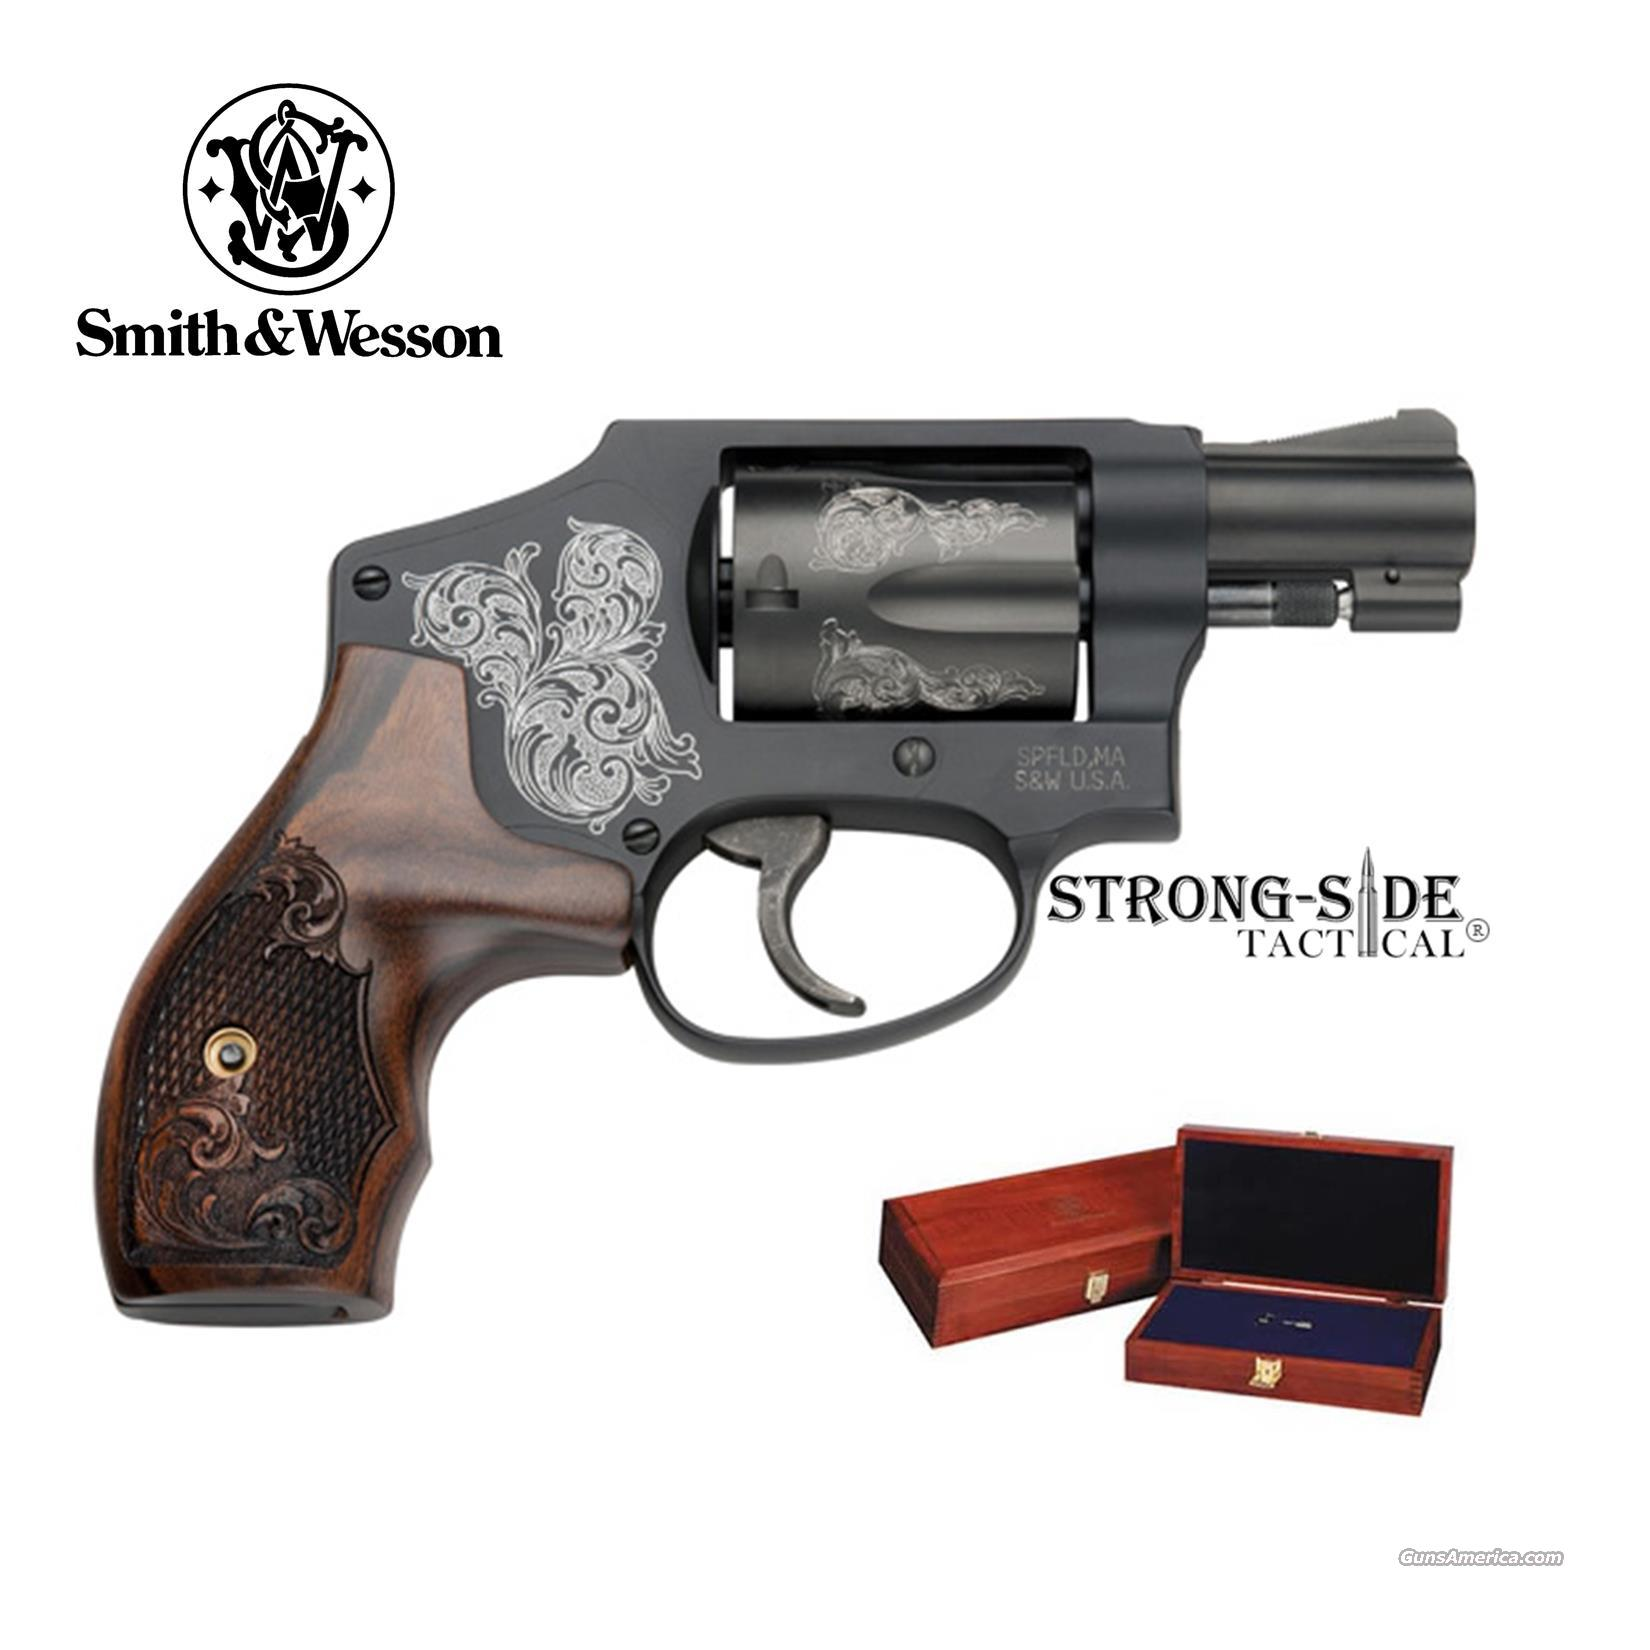 Smith & Wesson Model 442 Revolver- Machine Engraved .38 SPCL with Mahogany Presentation Case/Box (Ships FREE, no Credit Card Upcharge) LIMITED PRODUCTION, NO INTERNAL LOCK  Guns > Pistols > Smith & Wesson Revolvers > Performance Center